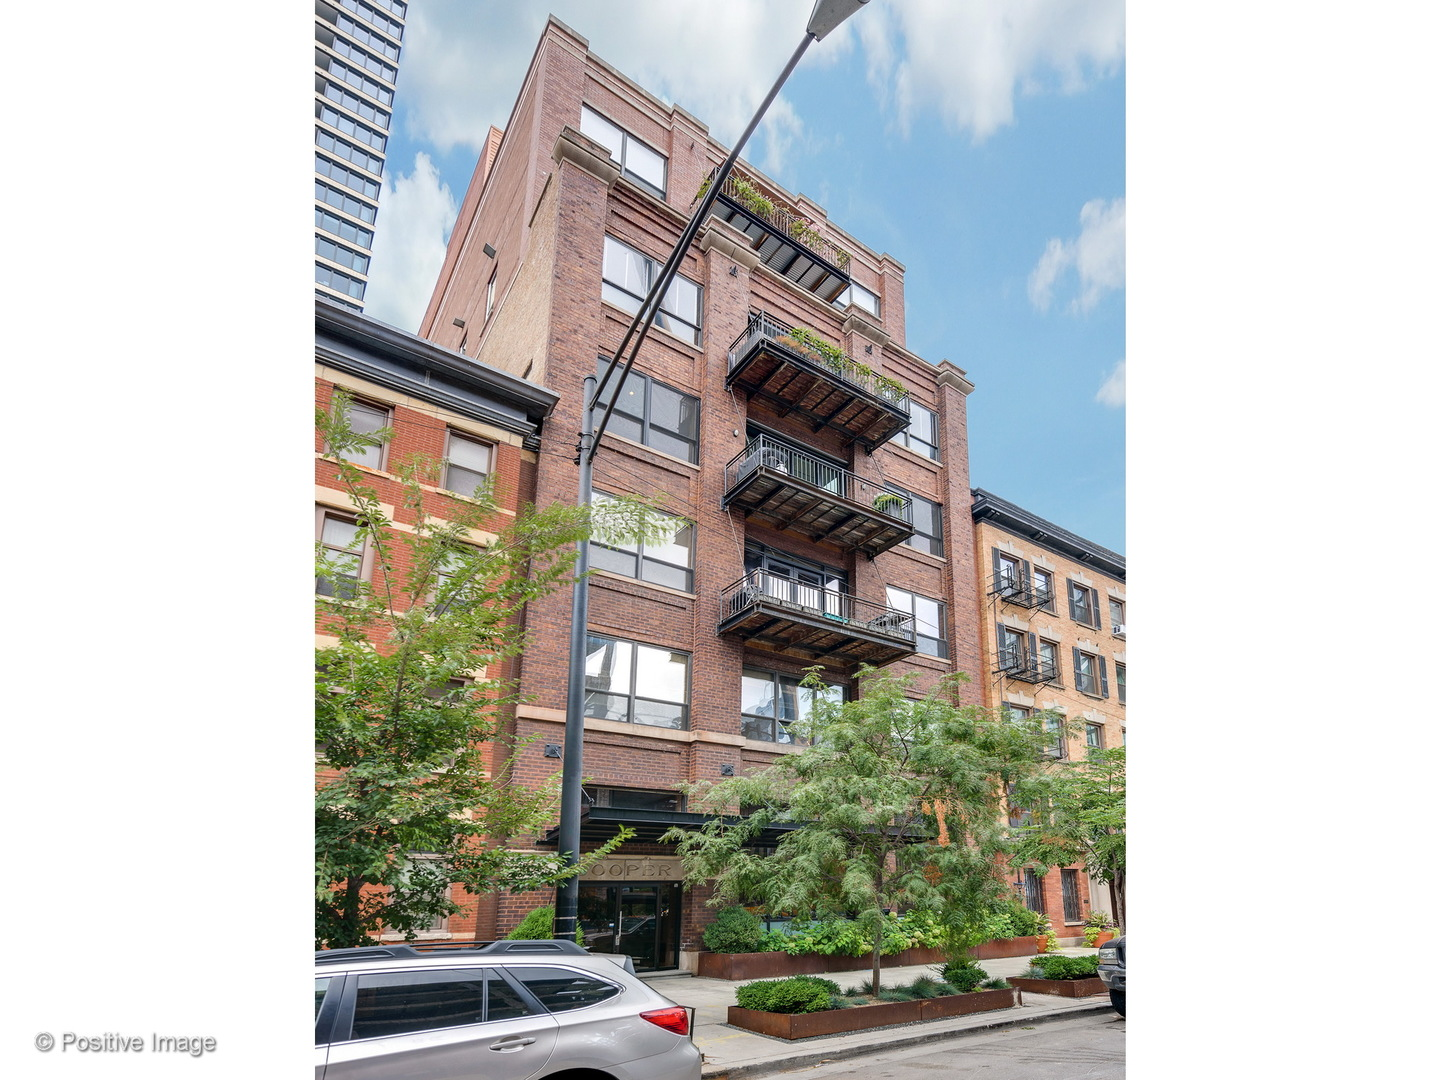 Additional photo for property listing at 152 West Huron Street #600 152 West Huron Street #600 Chicago, Illinois,60654 États-Unis